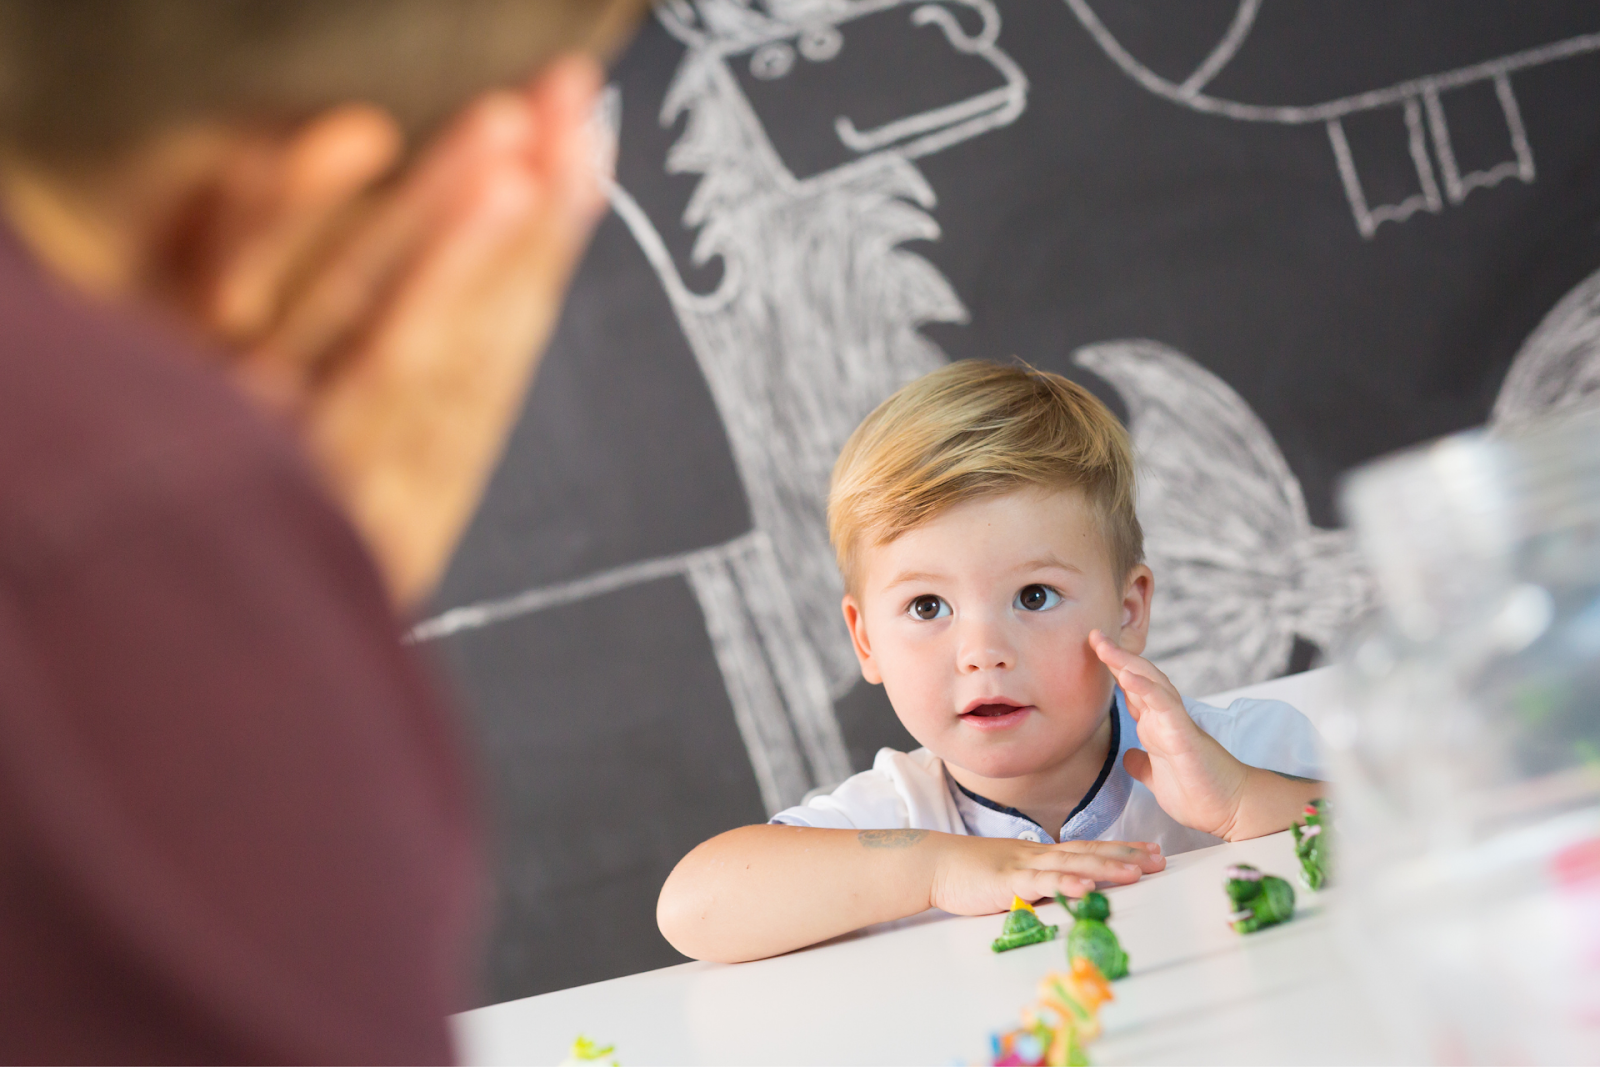 counselor talking to young child